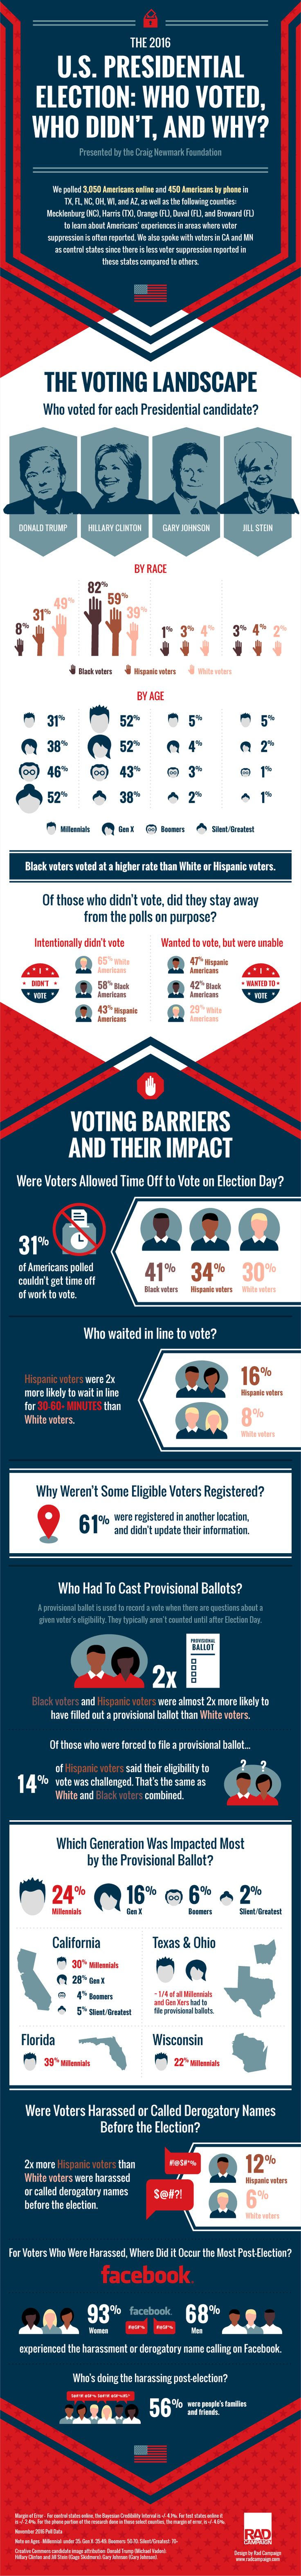 New poll reveals who voted, who didn't, and why in the 2016 Presidential Election: https://www.craigconnects.org/voting2016